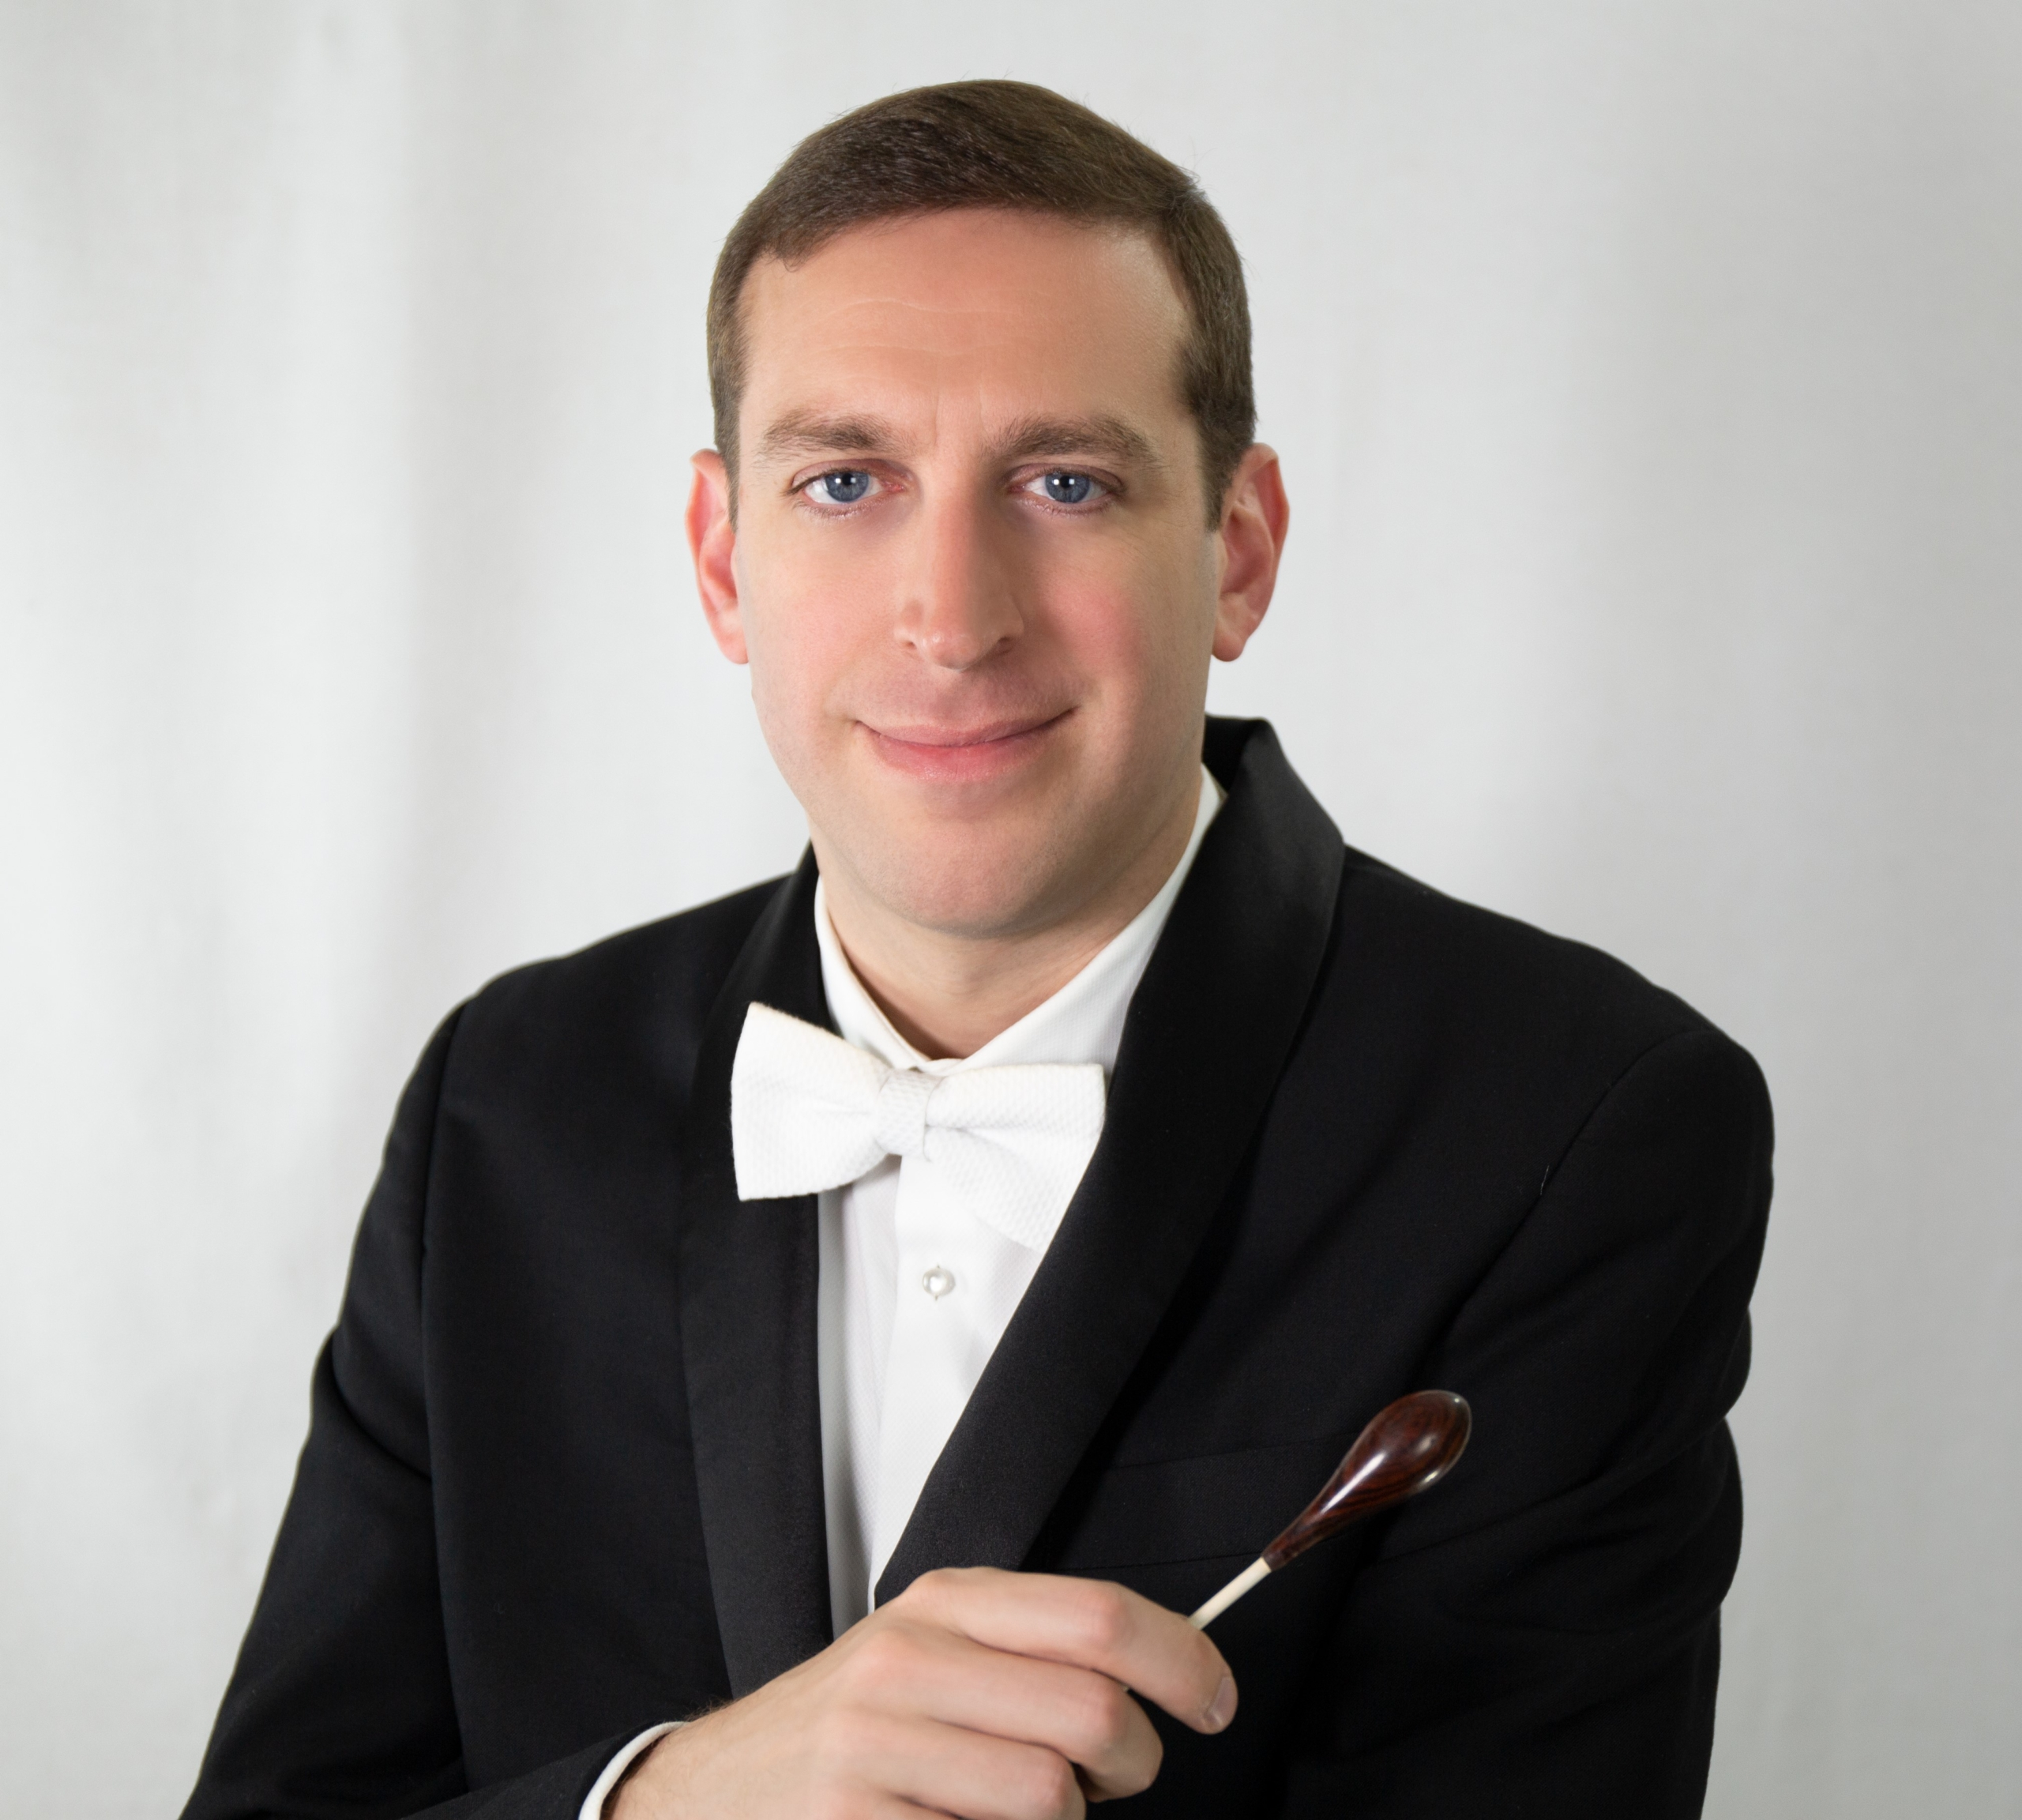 Orchestral conducting graduate accepts position at Allegheny College